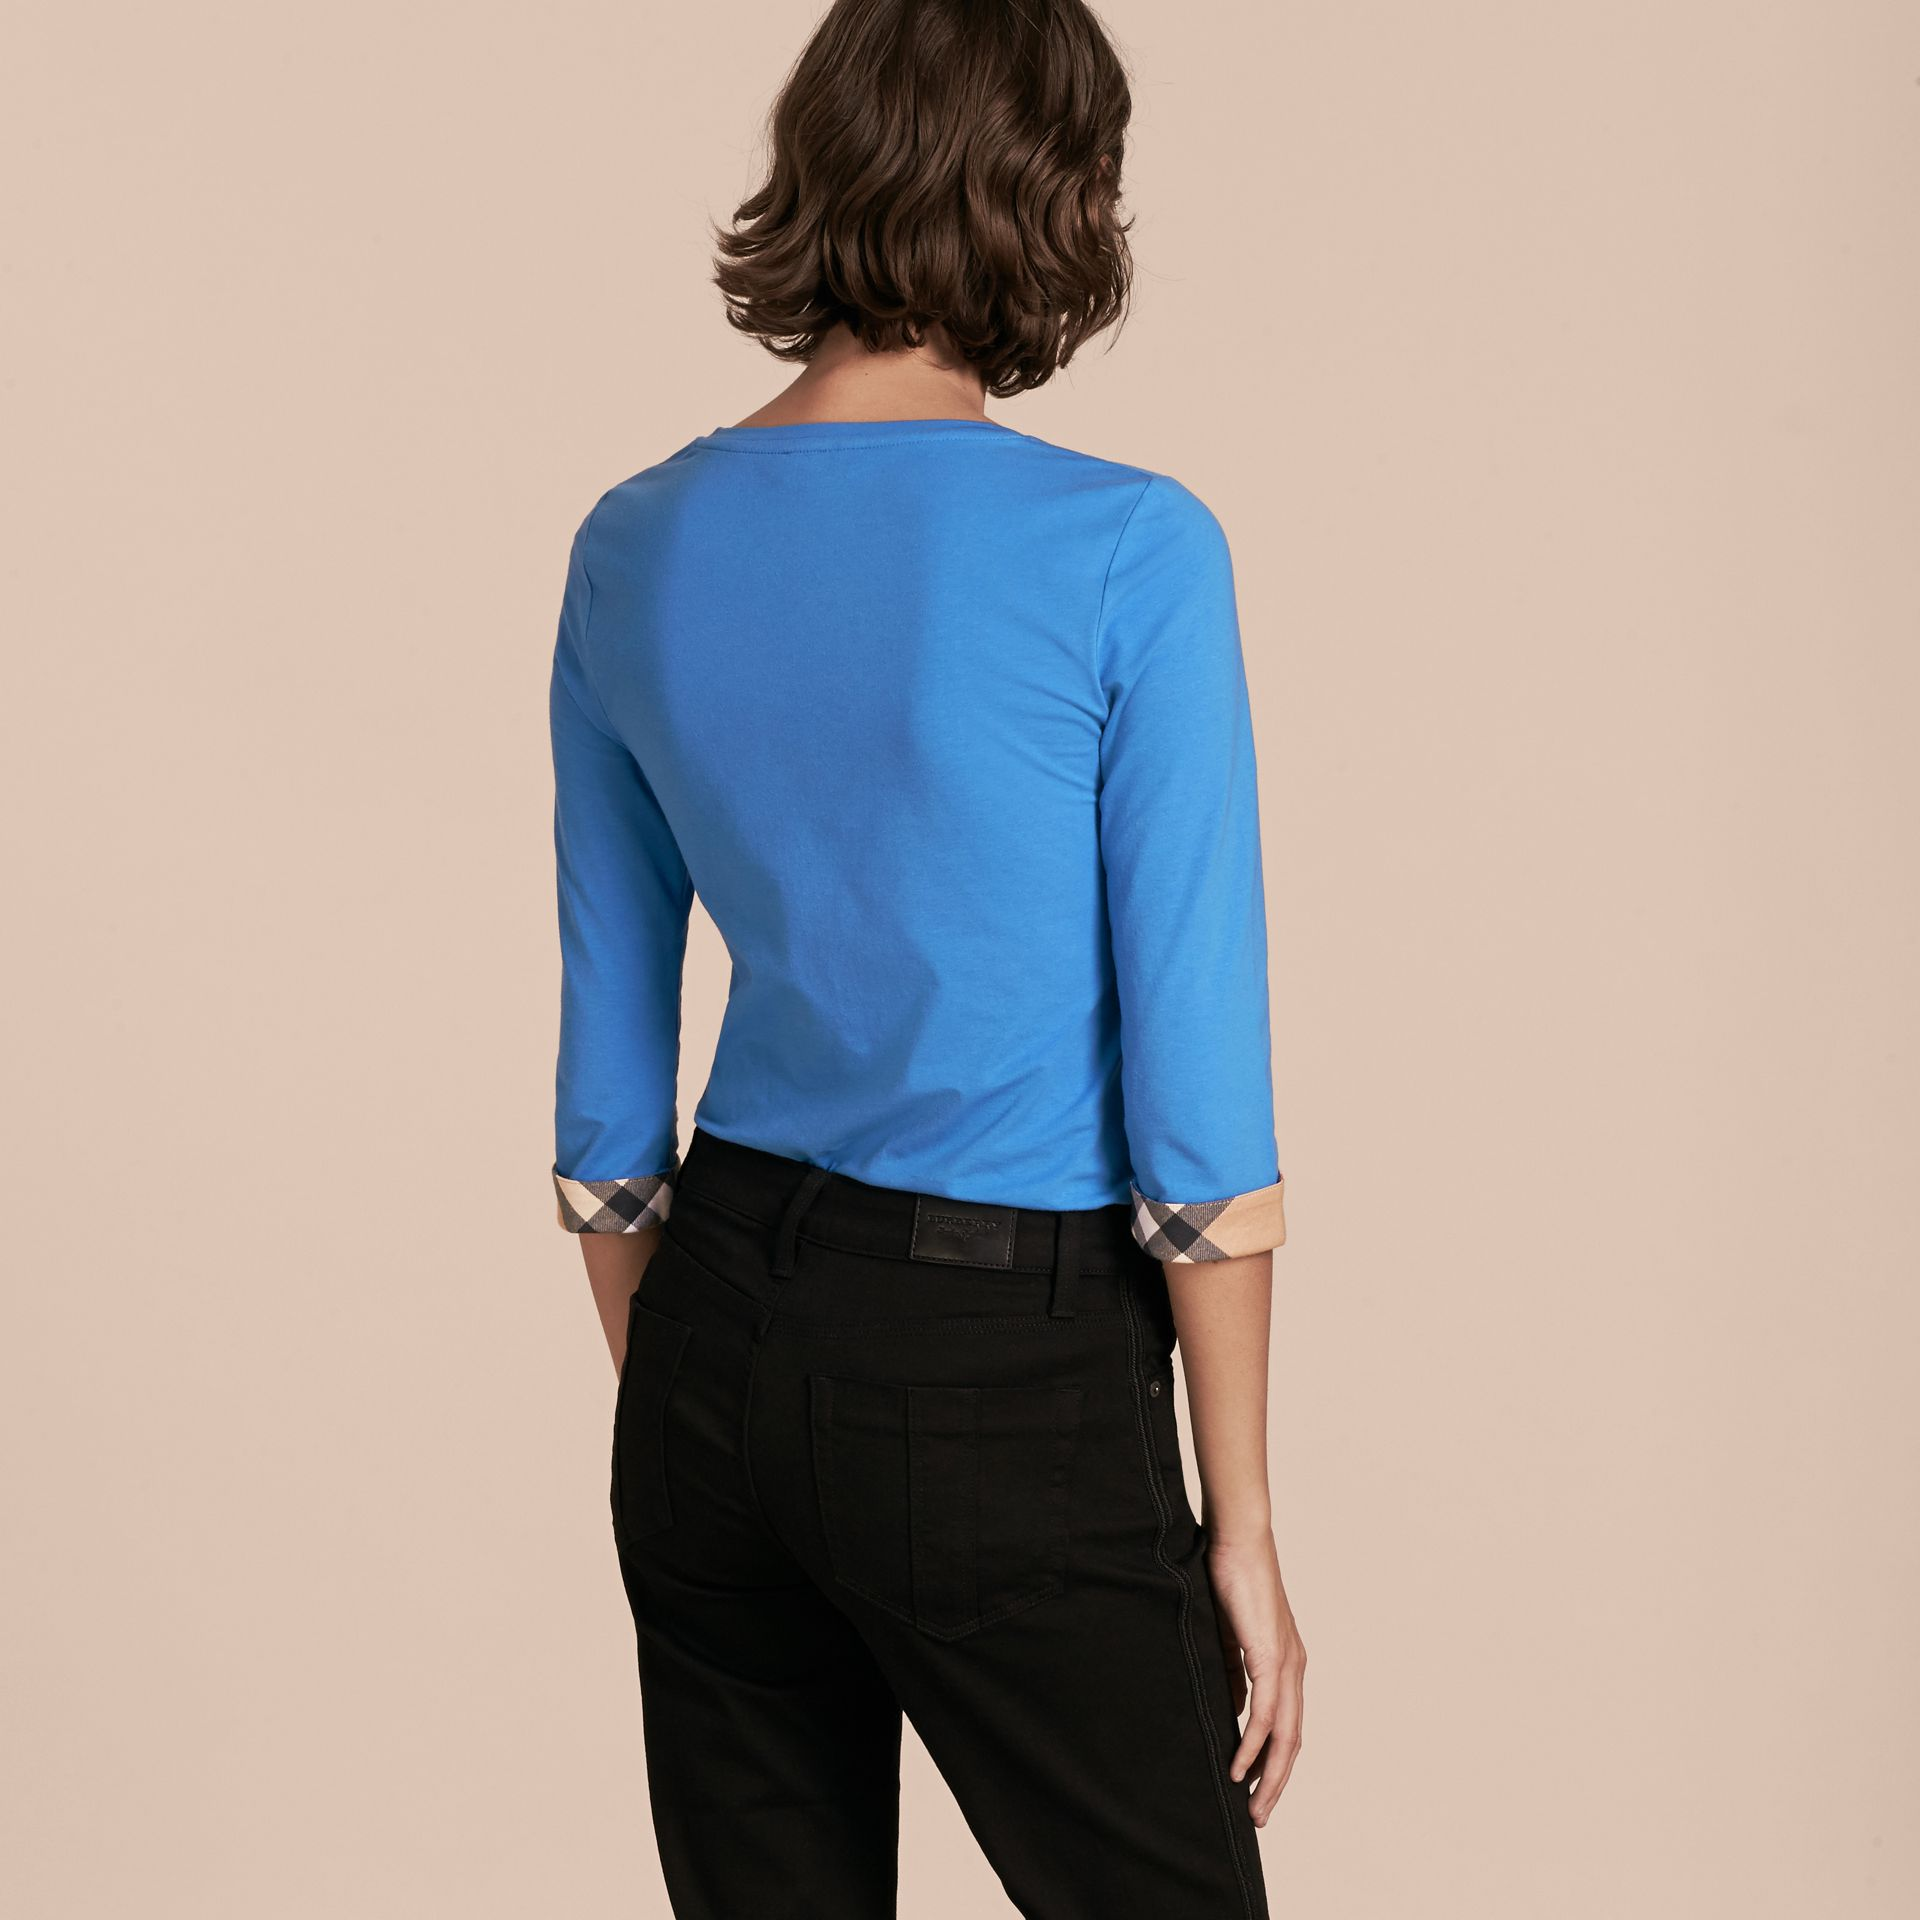 Bright hydrangea blue Three-quarter Sleeved Stretch Cotton T-shirt with Check Trim Bright Hydrangea Blue - gallery image 3